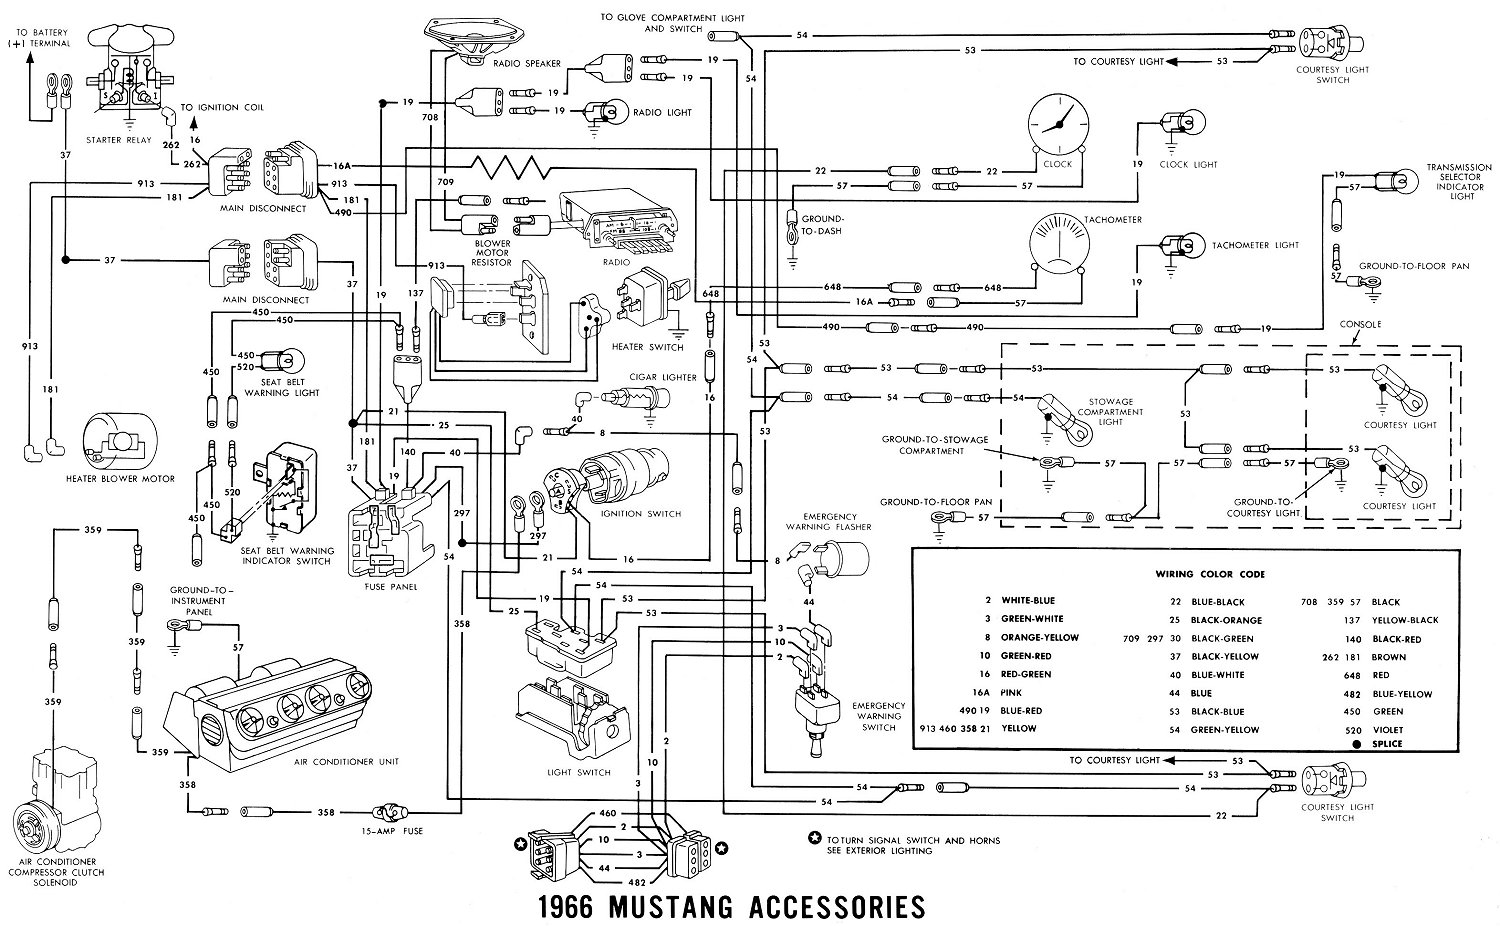 66acces1 1966 mustang wiring diagrams average joe restoration on 1966 mustang wiring diagrams electrical schematics